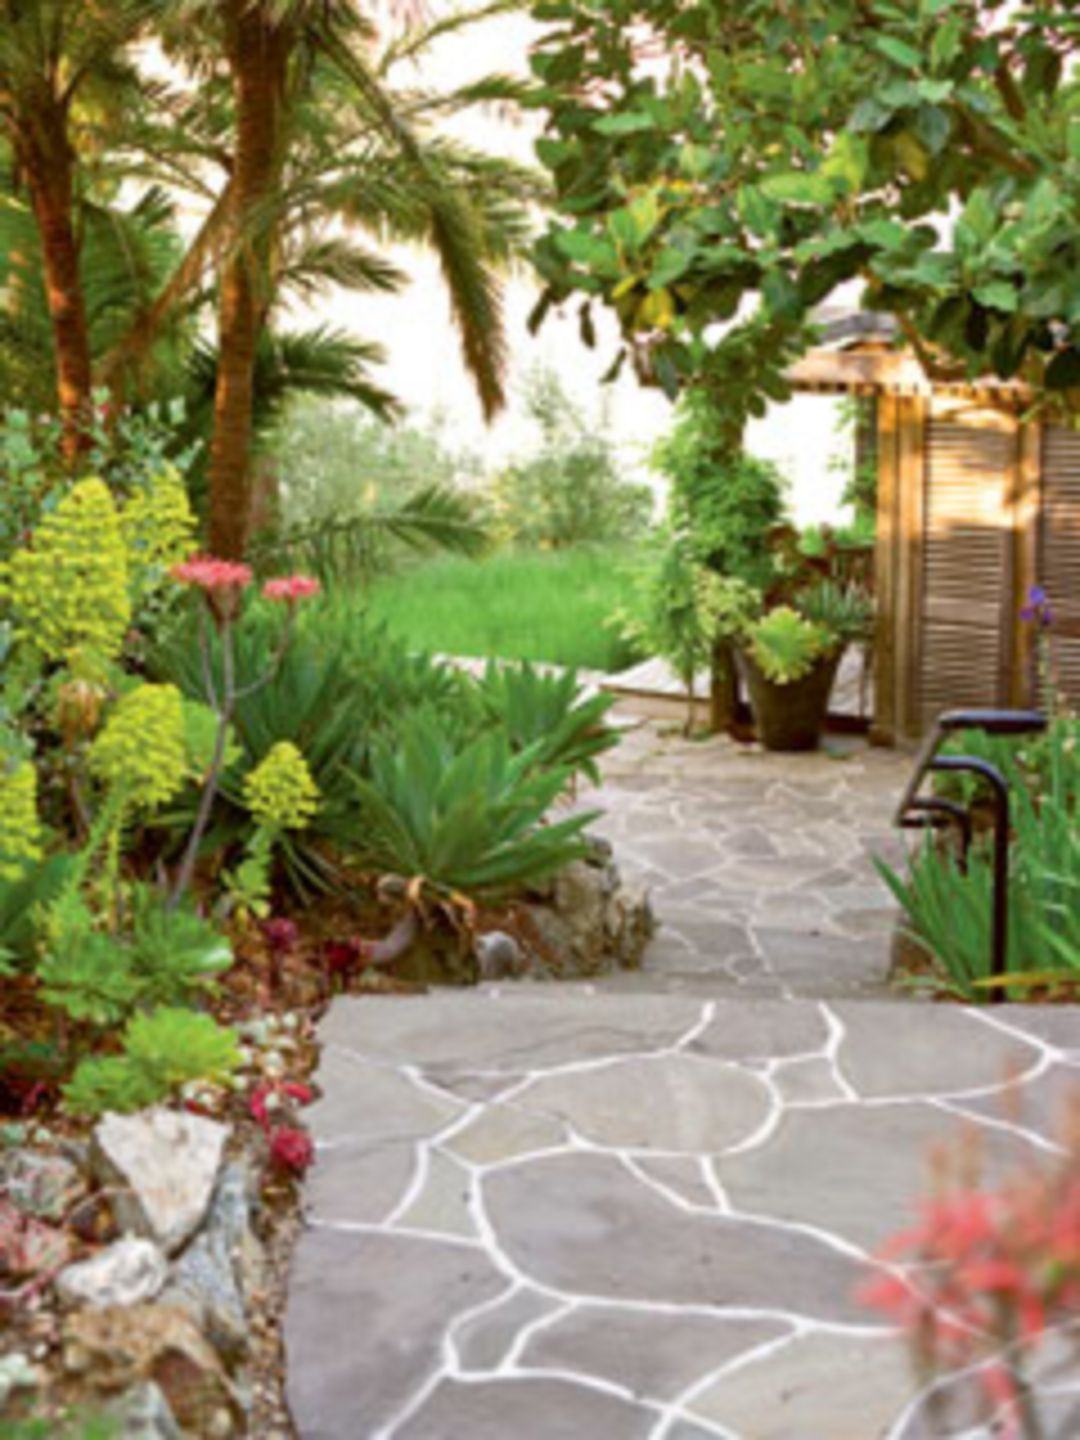 lush landscaping ideas. Outstanding 85+ Fabulous Lush Garden Design Ideas To Make Your Yard Awesome Https:/ Landscaping